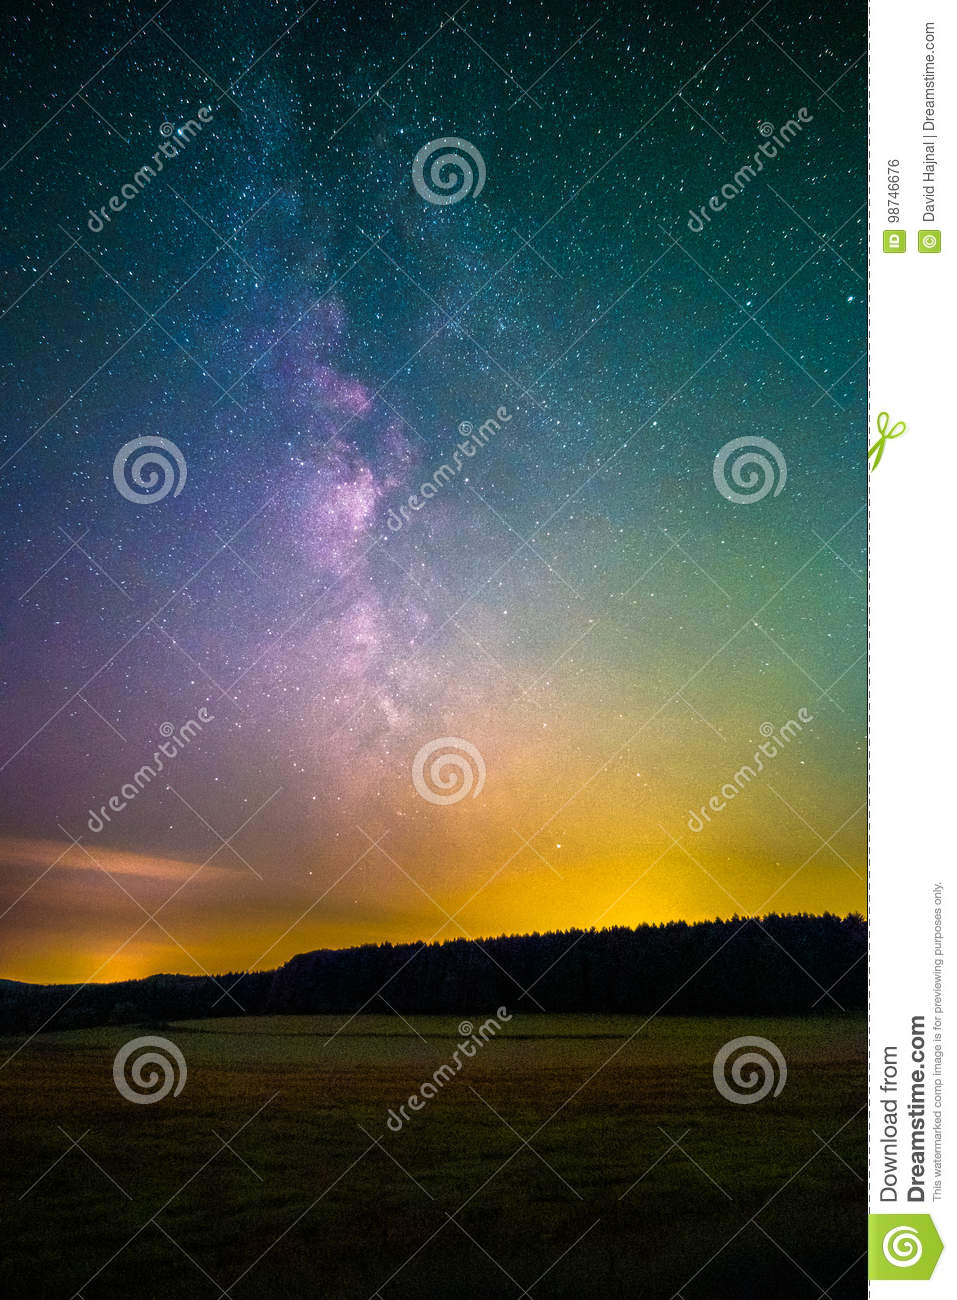 Light Pollution stock photo  Image of astronomy, backgrounds